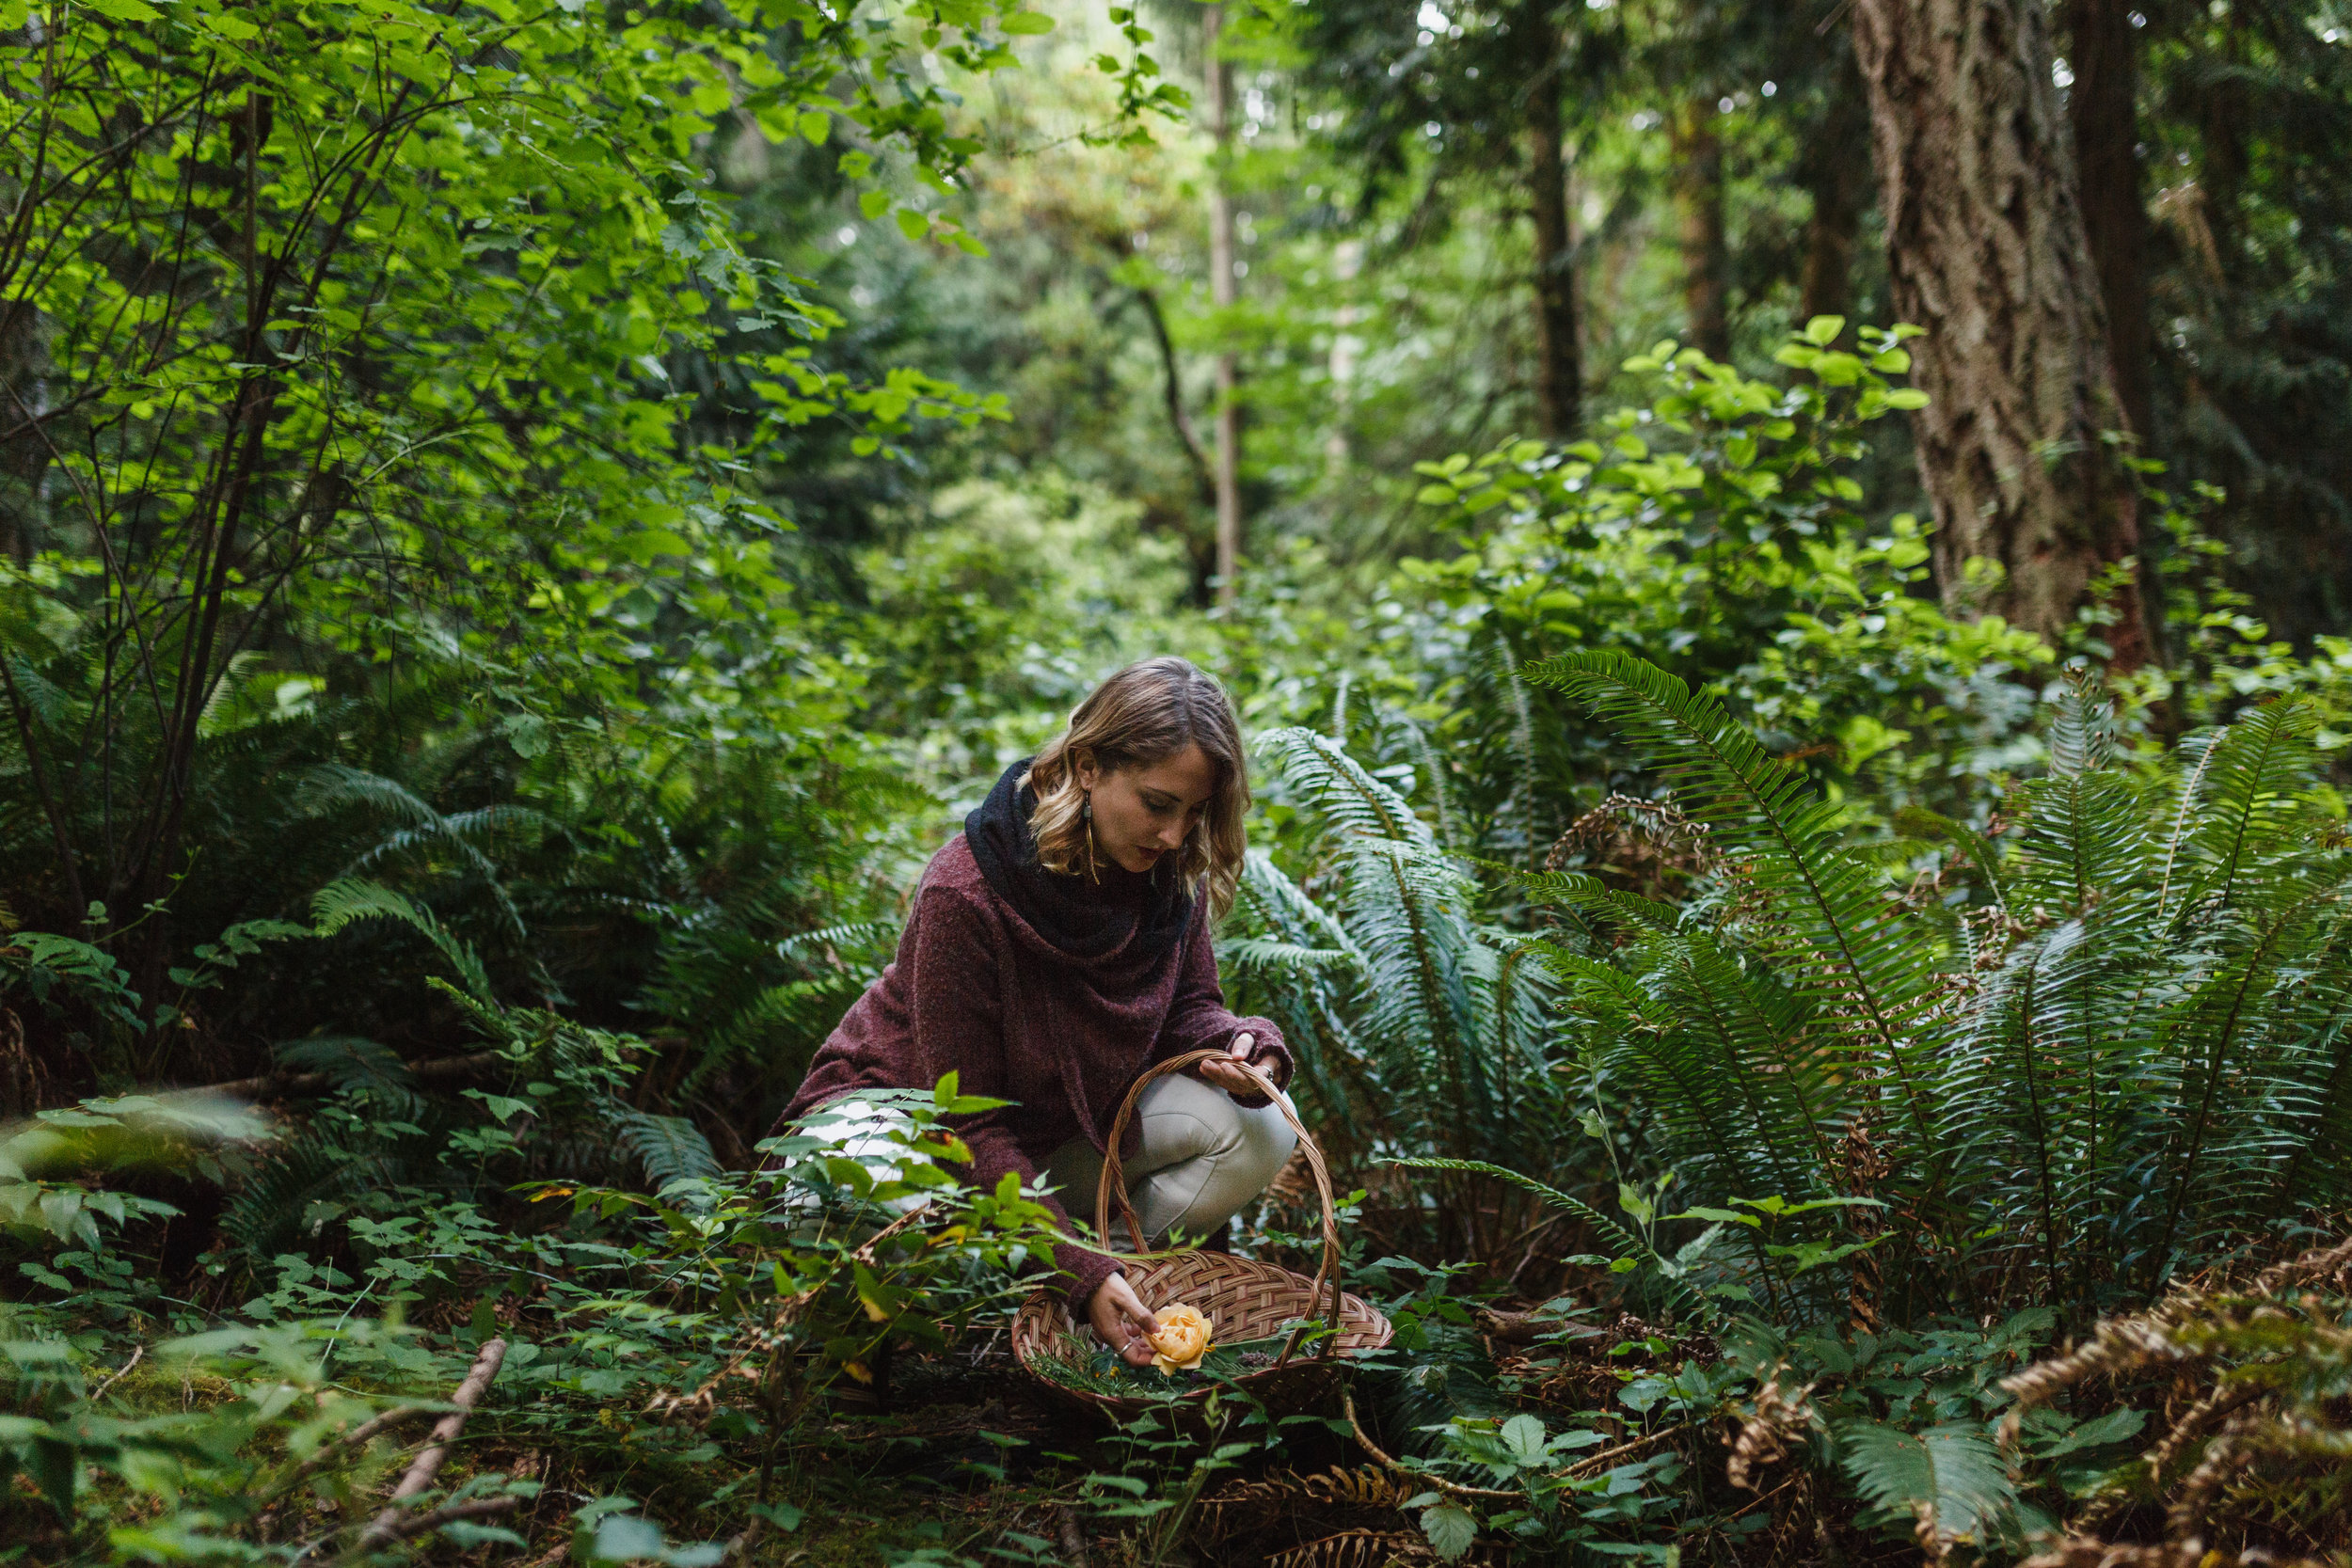 Herbalist in the forest